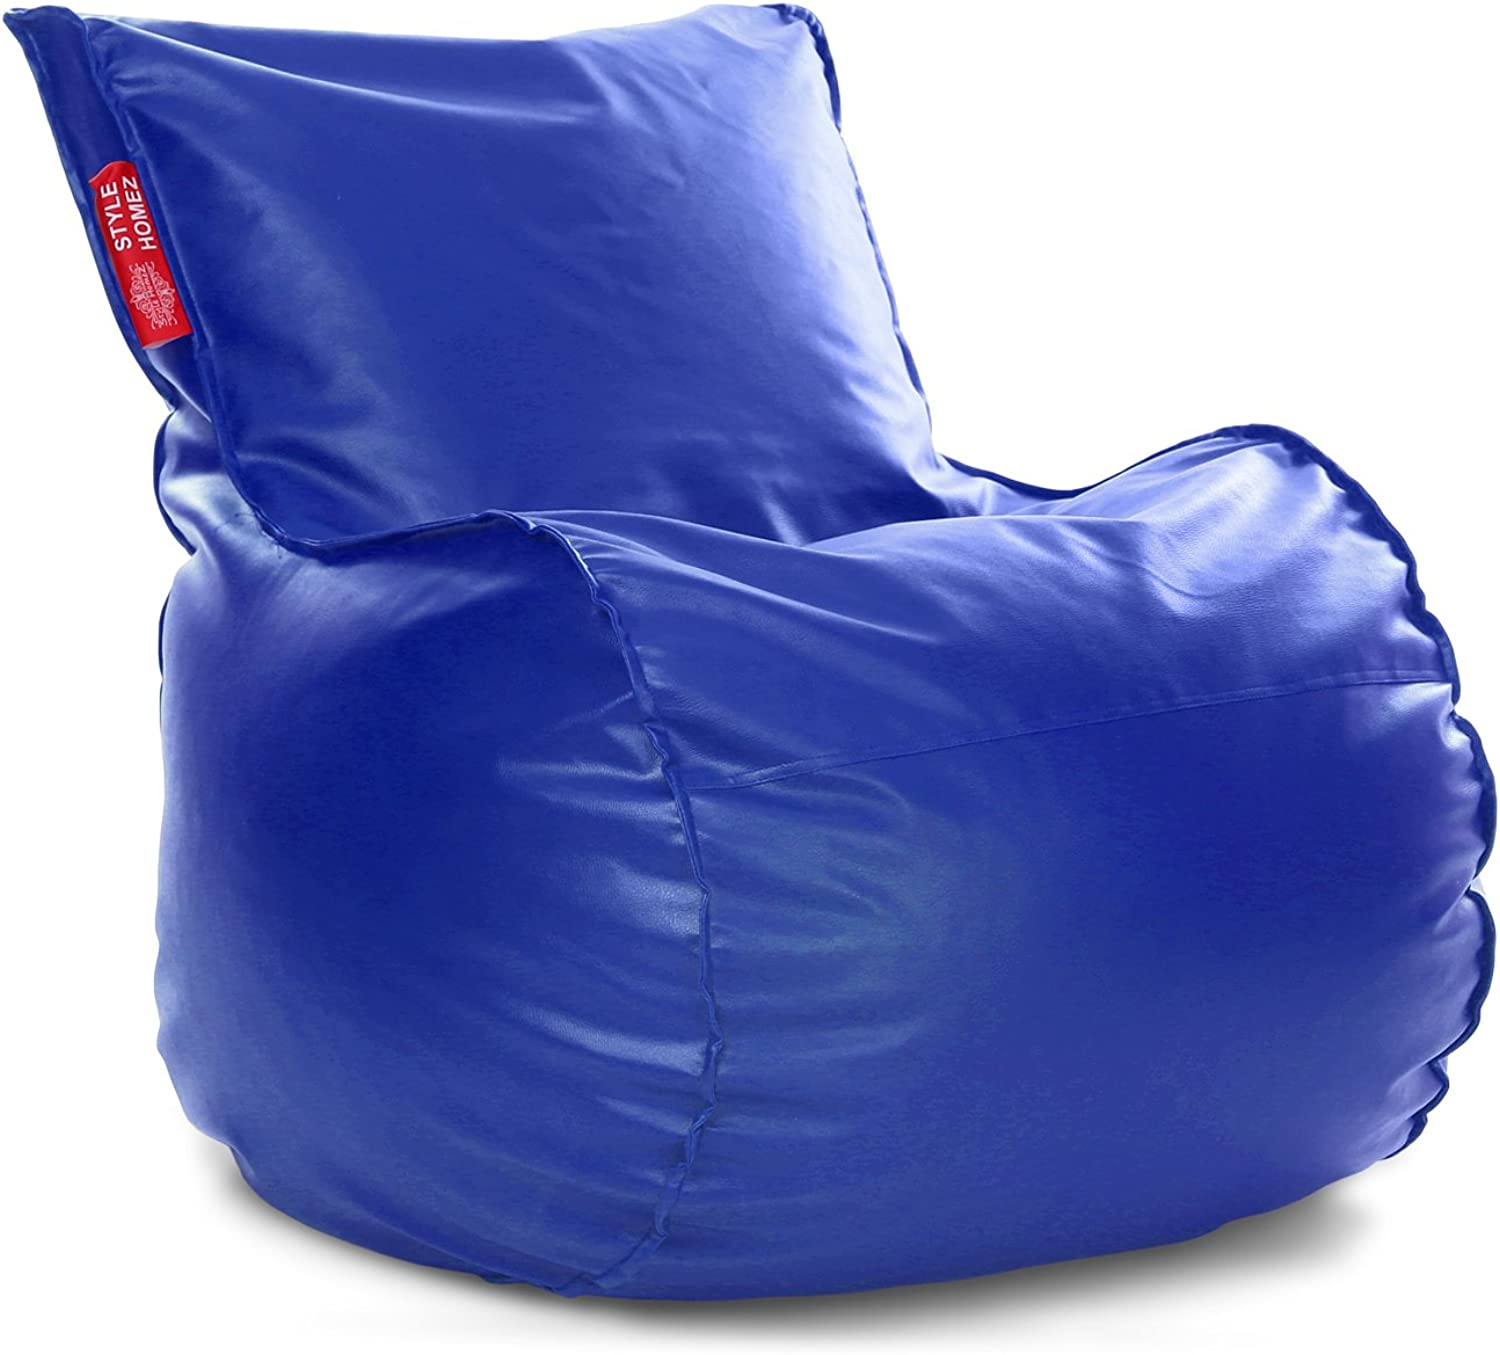 Style Homez Mambo Bean Bag XXL Size Royal bluee Cover Only